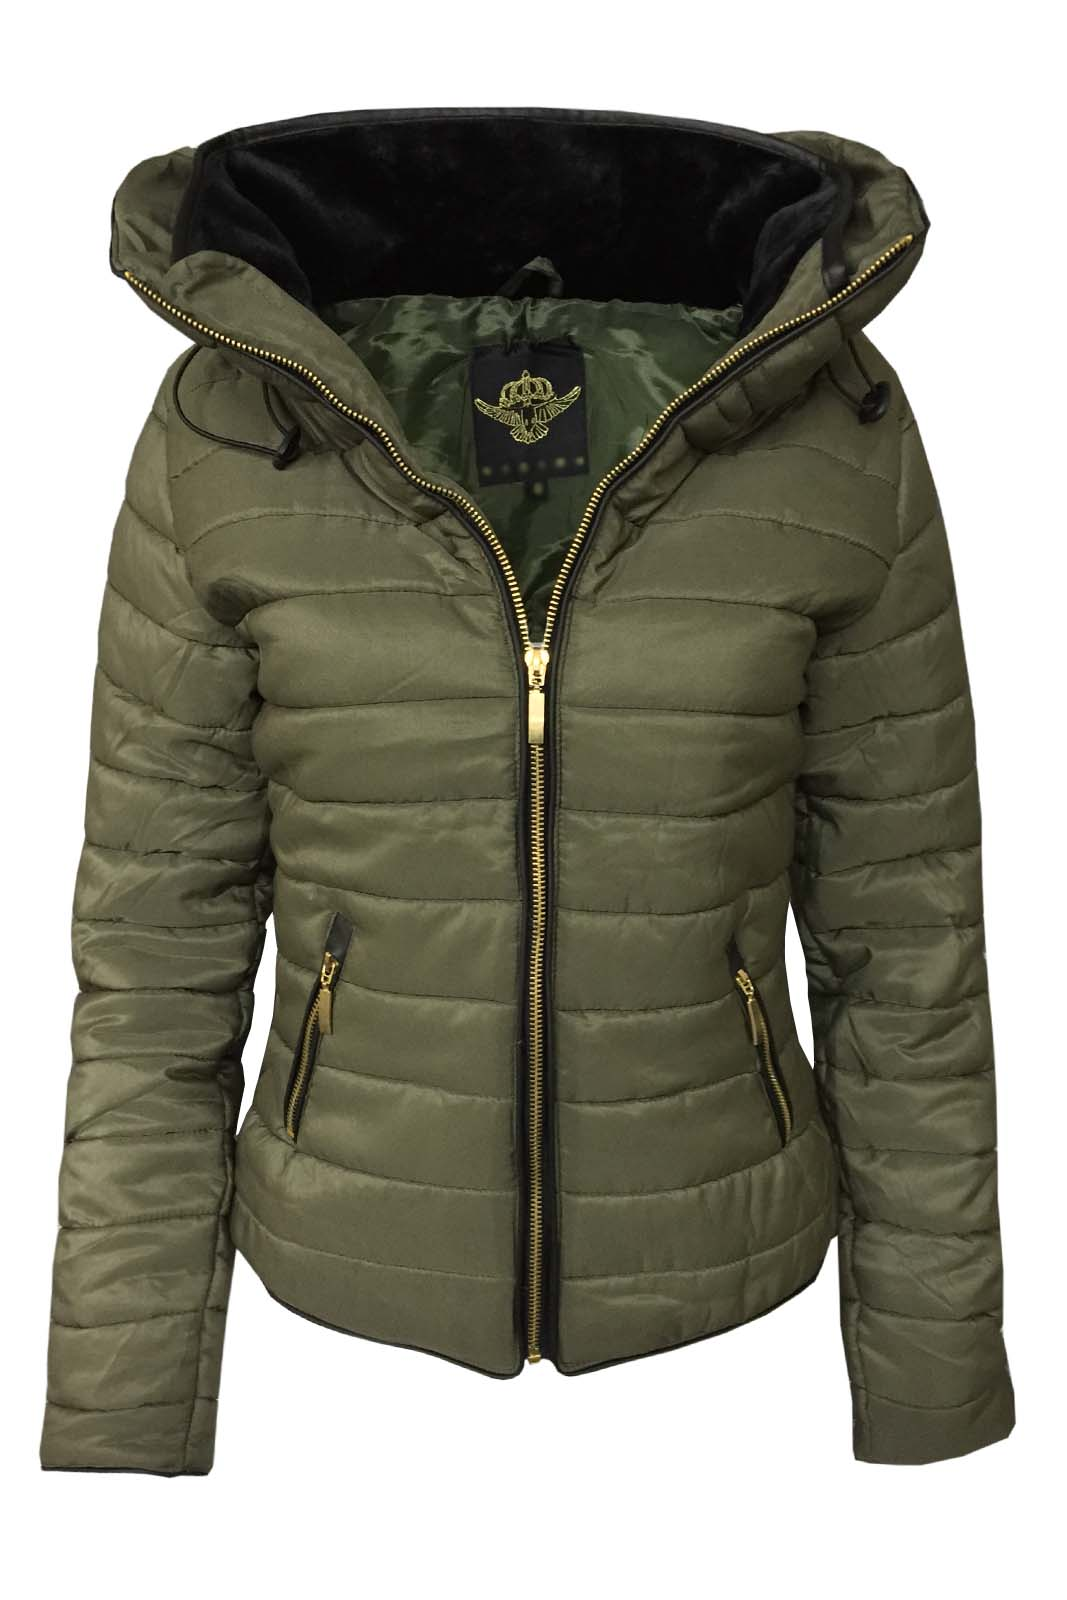 Tru Blu Women's Quilted Puffer Jacket Ladies Padded Bomber Zipper ...